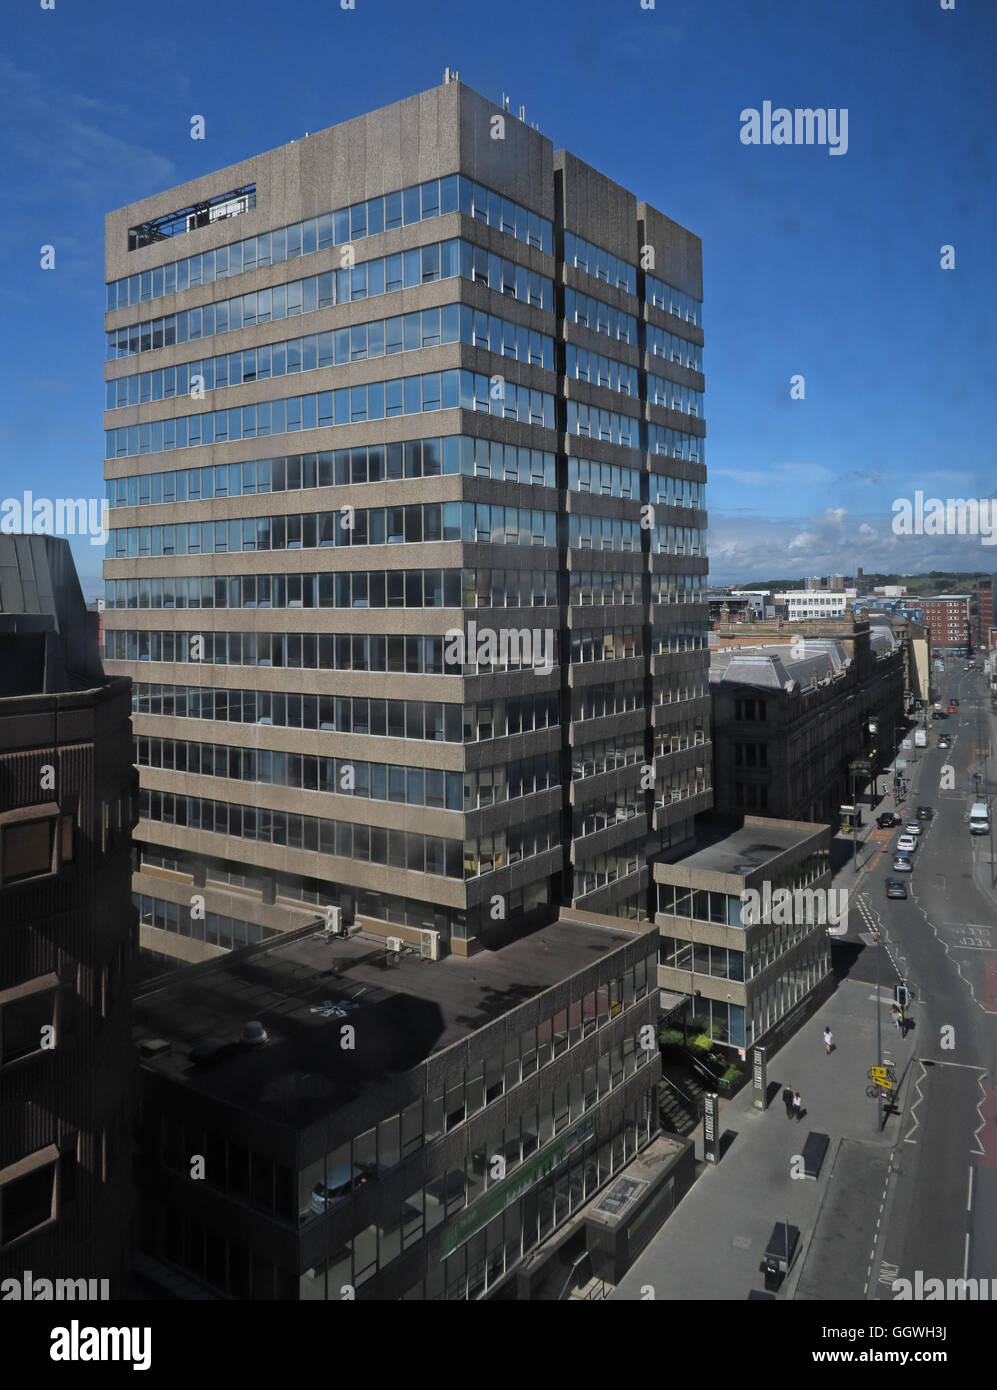 Silkhouse Court Office Block, Tithebarn St, Liverpool L2 2QW - Stock Image